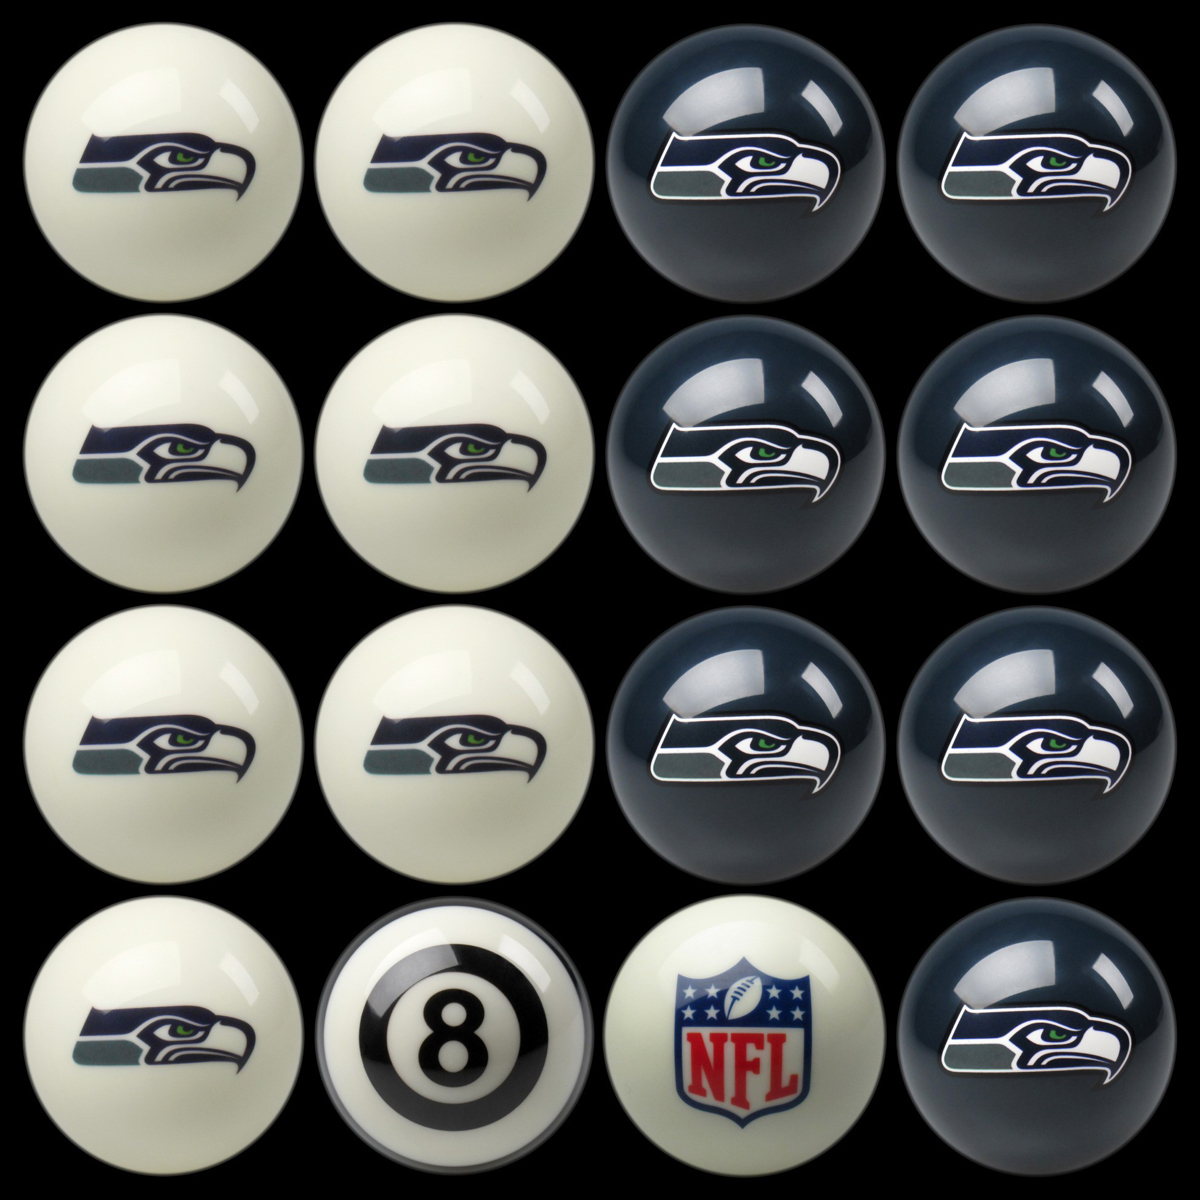 SEATTLE SEAHAWKS HOME VS. AWAY BILLIARD BALL SET